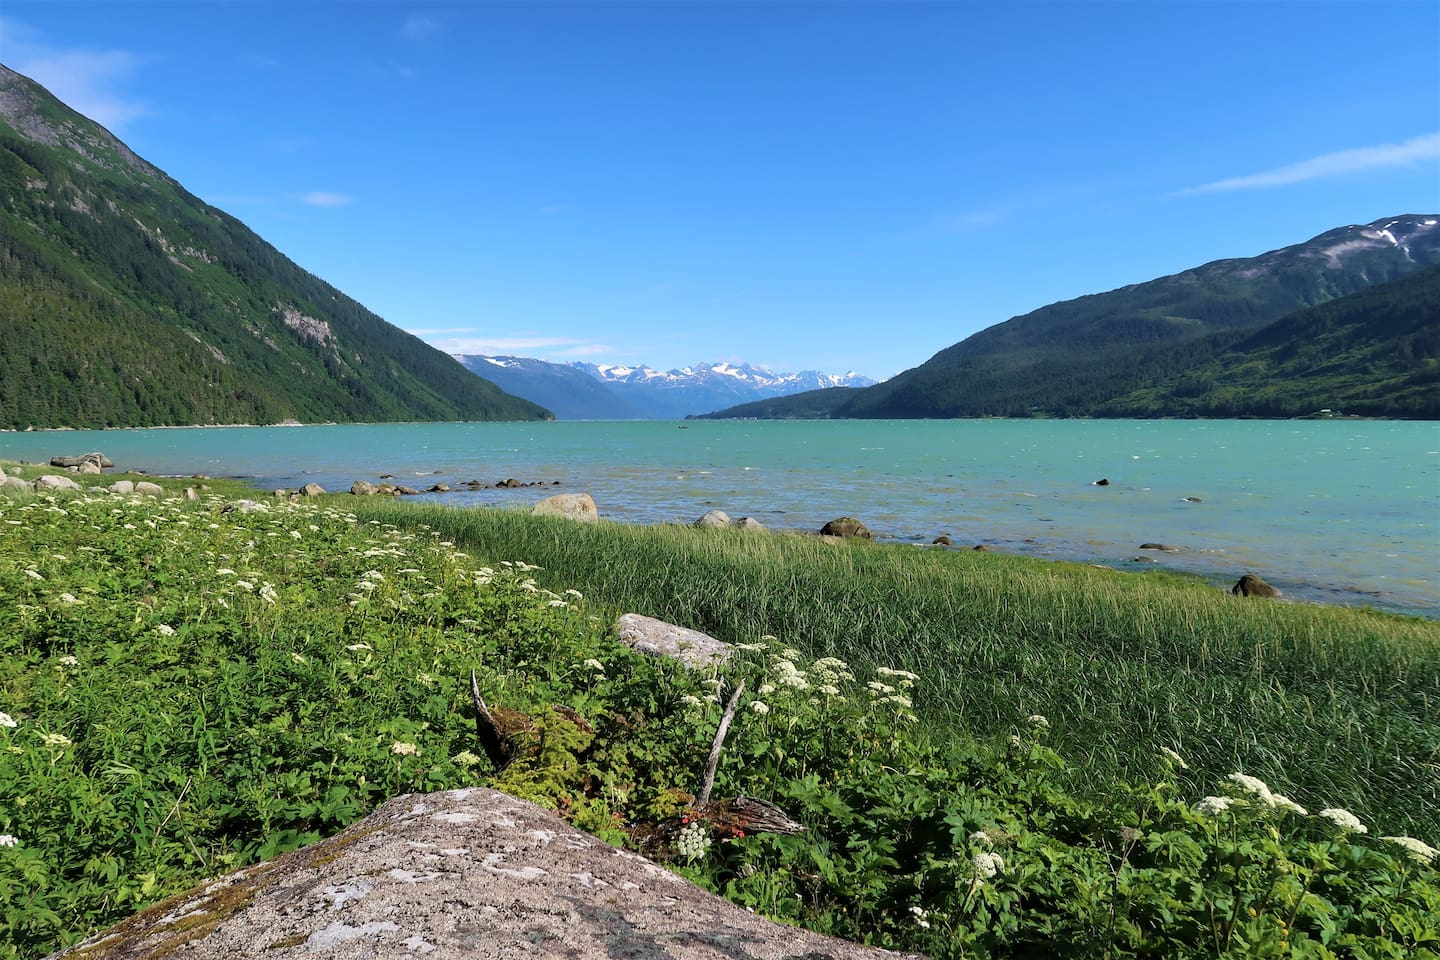 Lutak Inlet is the front yard.  Chilkoot River empties into the ocean right in front of the house.  There are large tidal flats to explore at low tide and fishing and wildlife right out the front door.